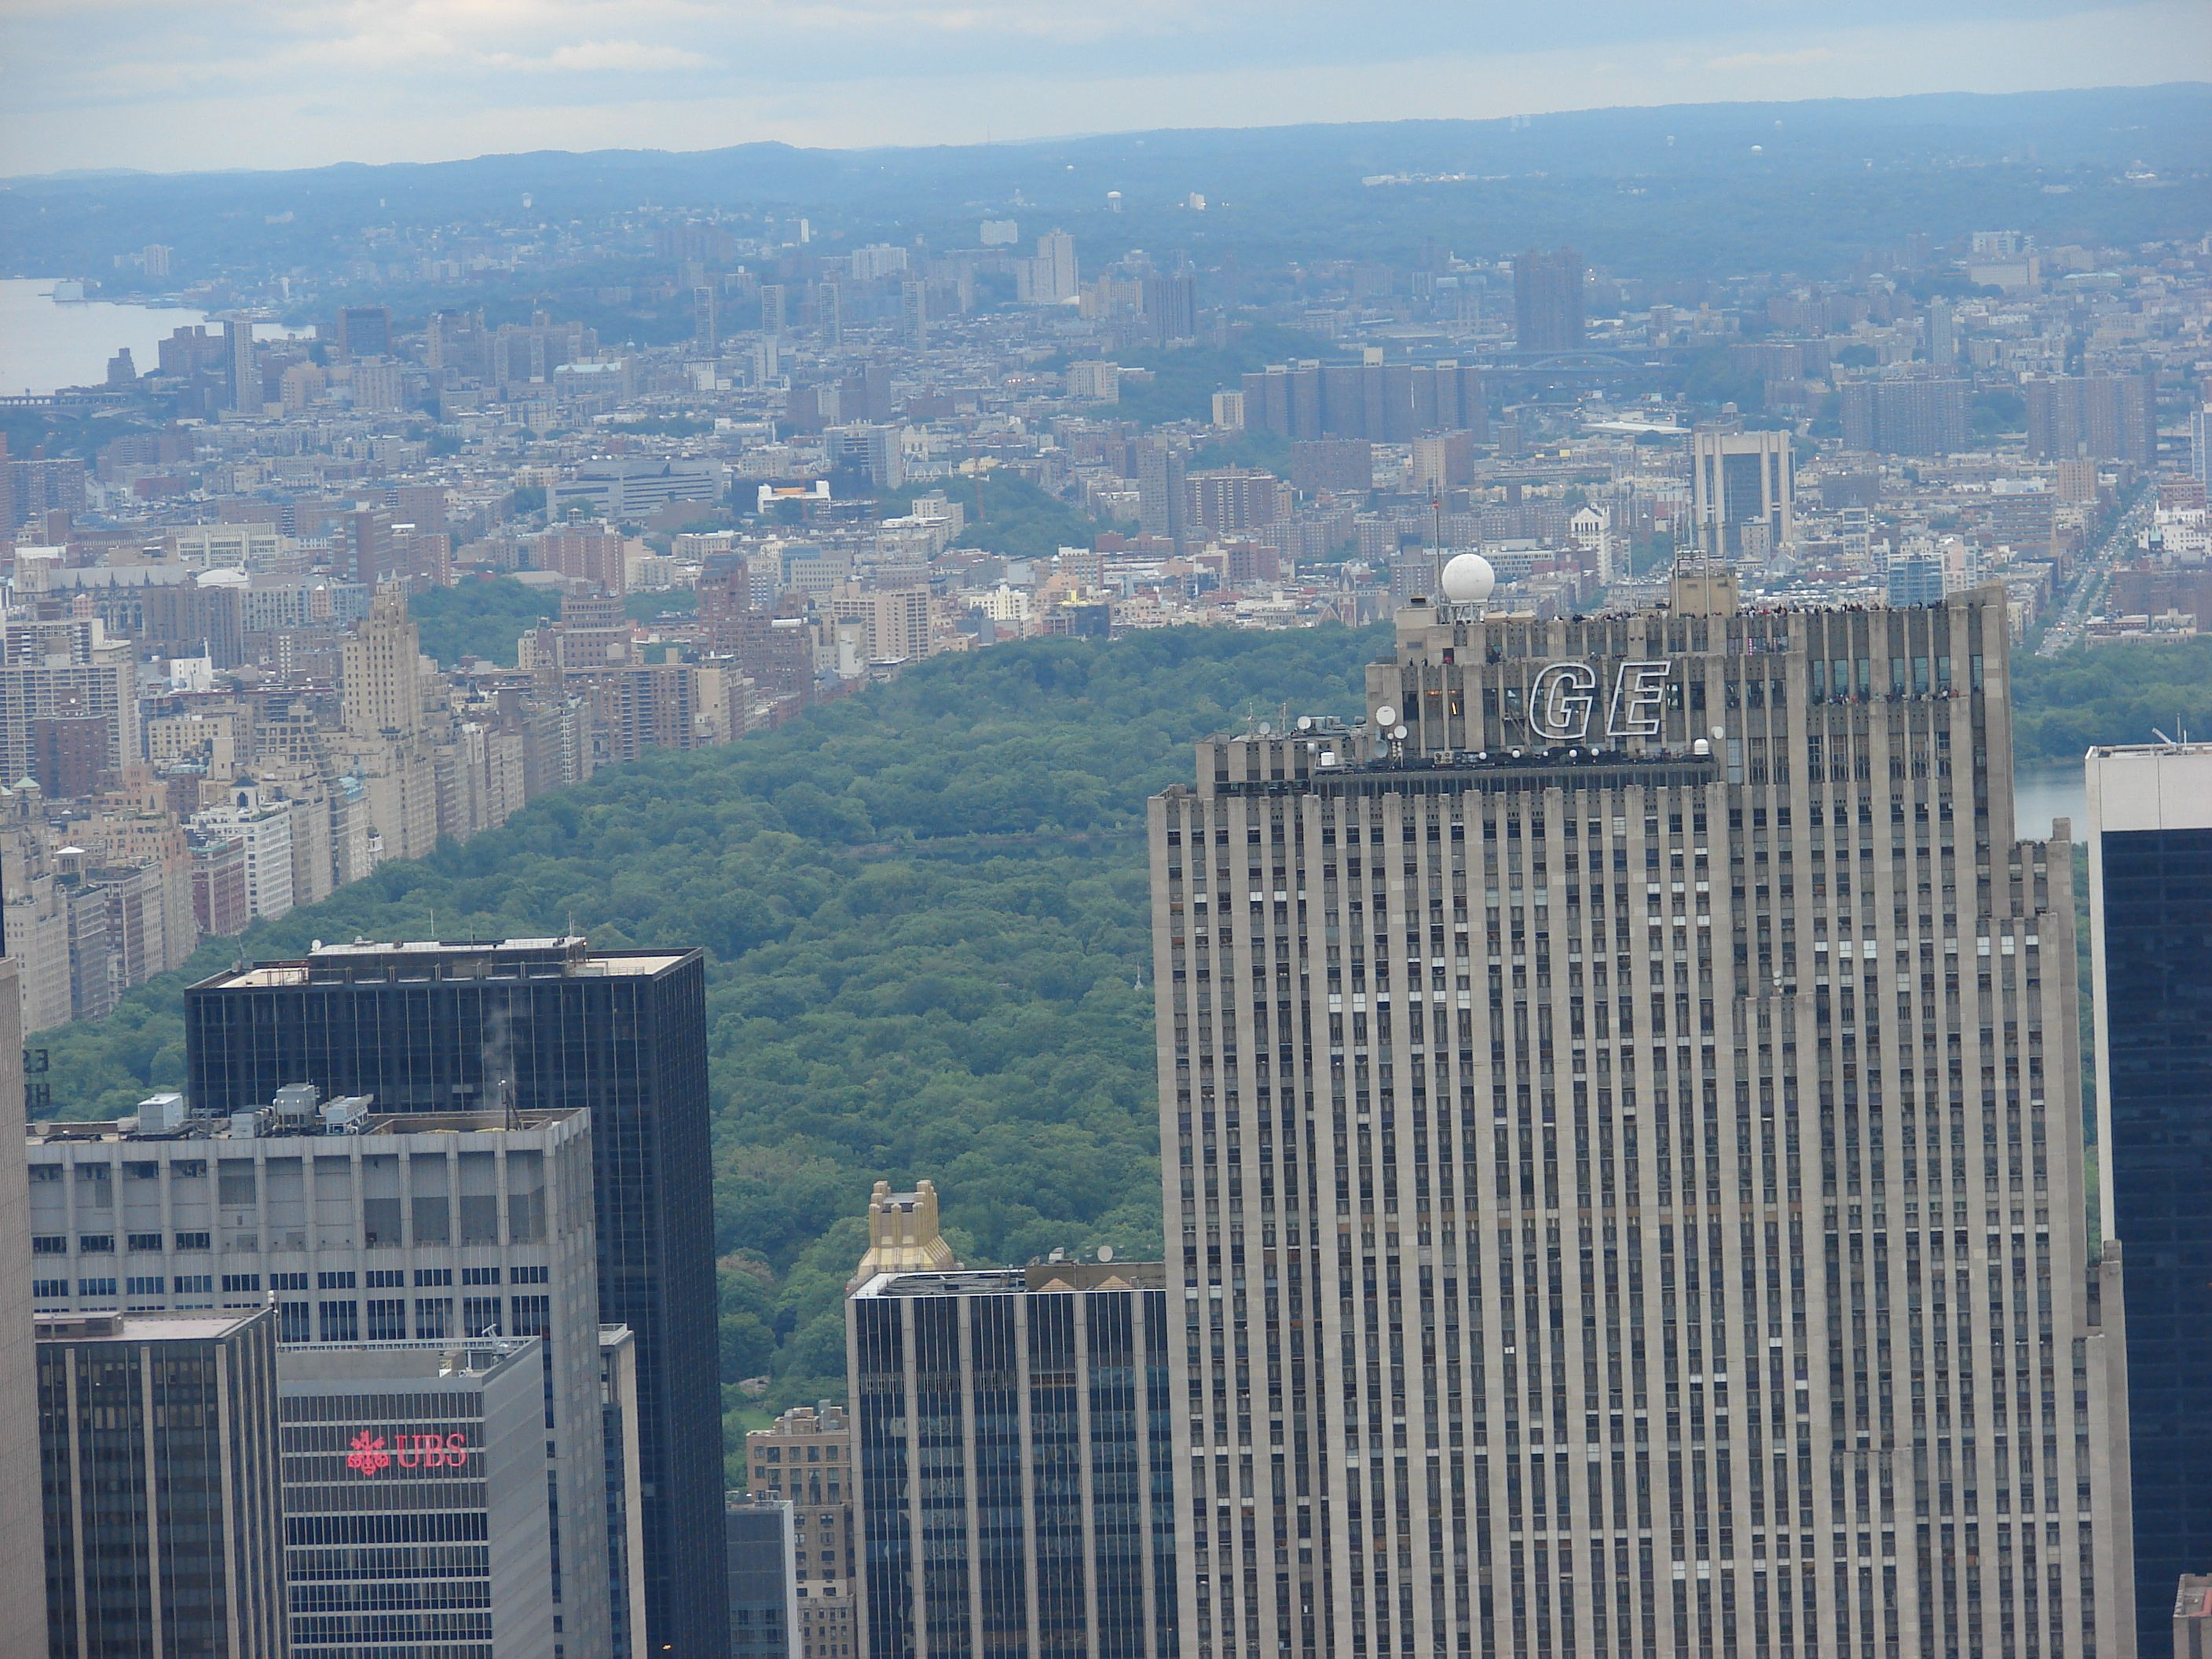 Central Park from top of Empire State Building. New york